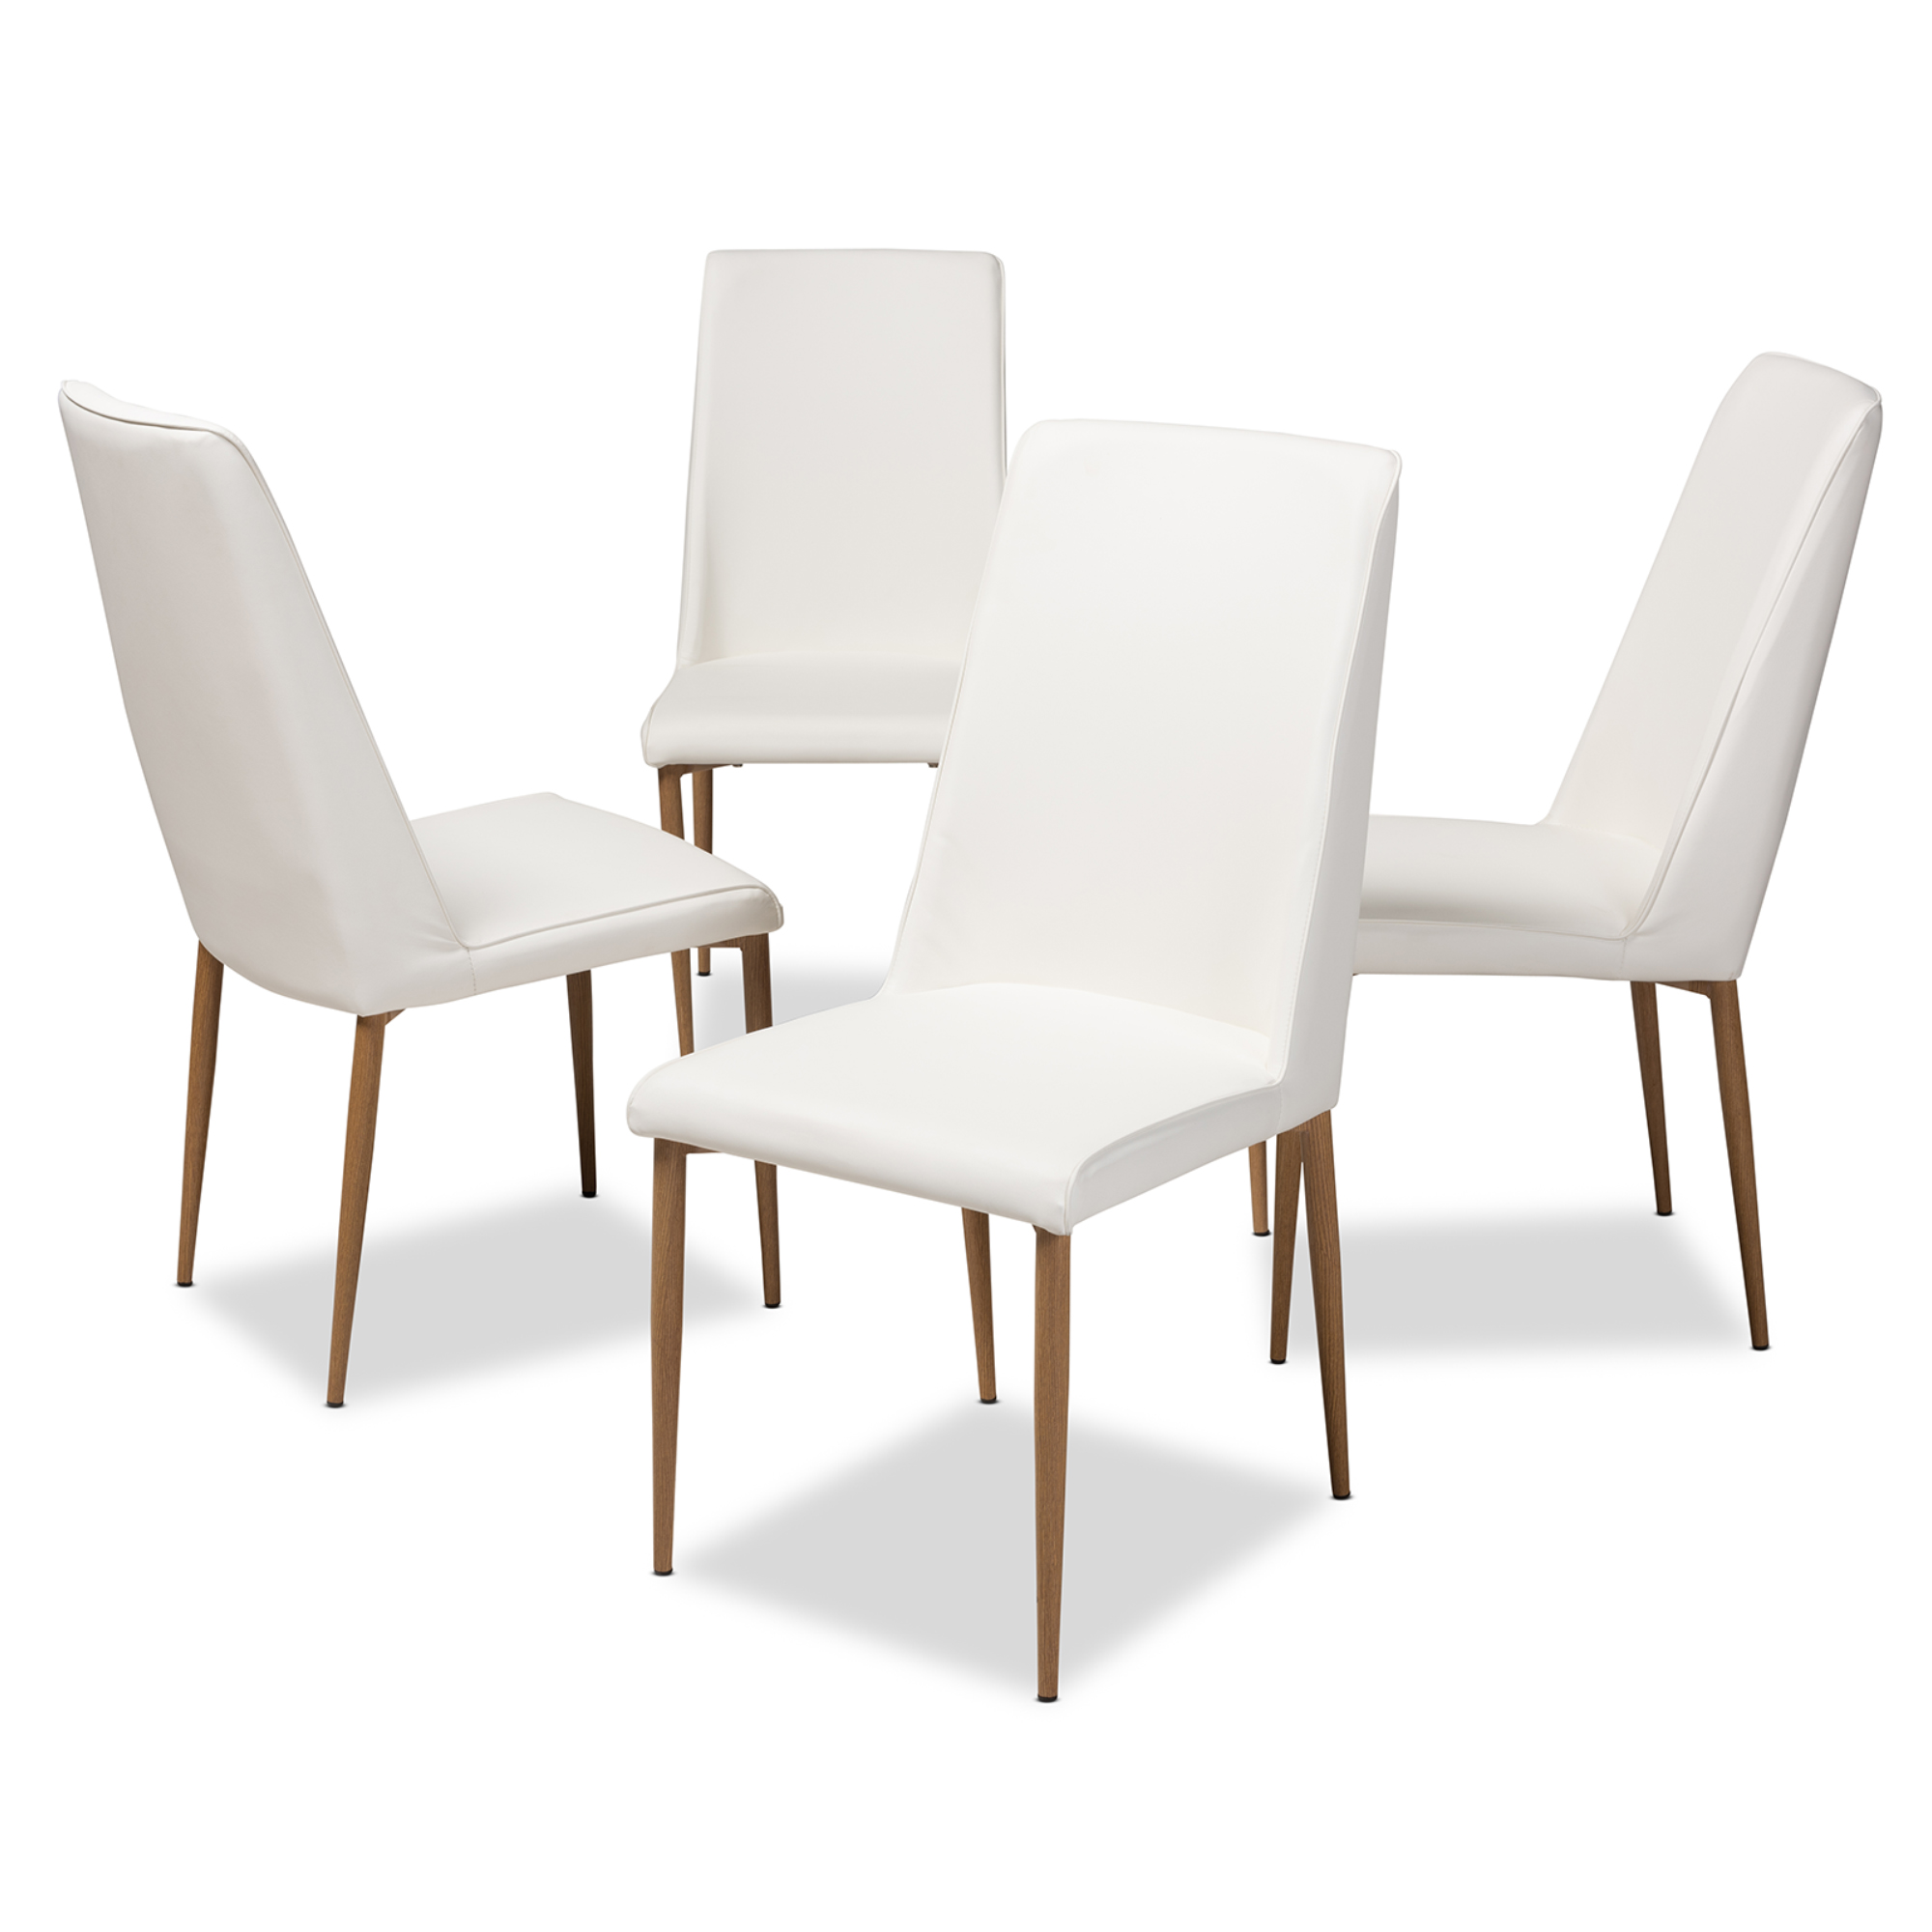 Bon Baxton Studio Chandelle Modern And Contemporary White Faux Leather  Upholstered Dining Chair (Set Of 4